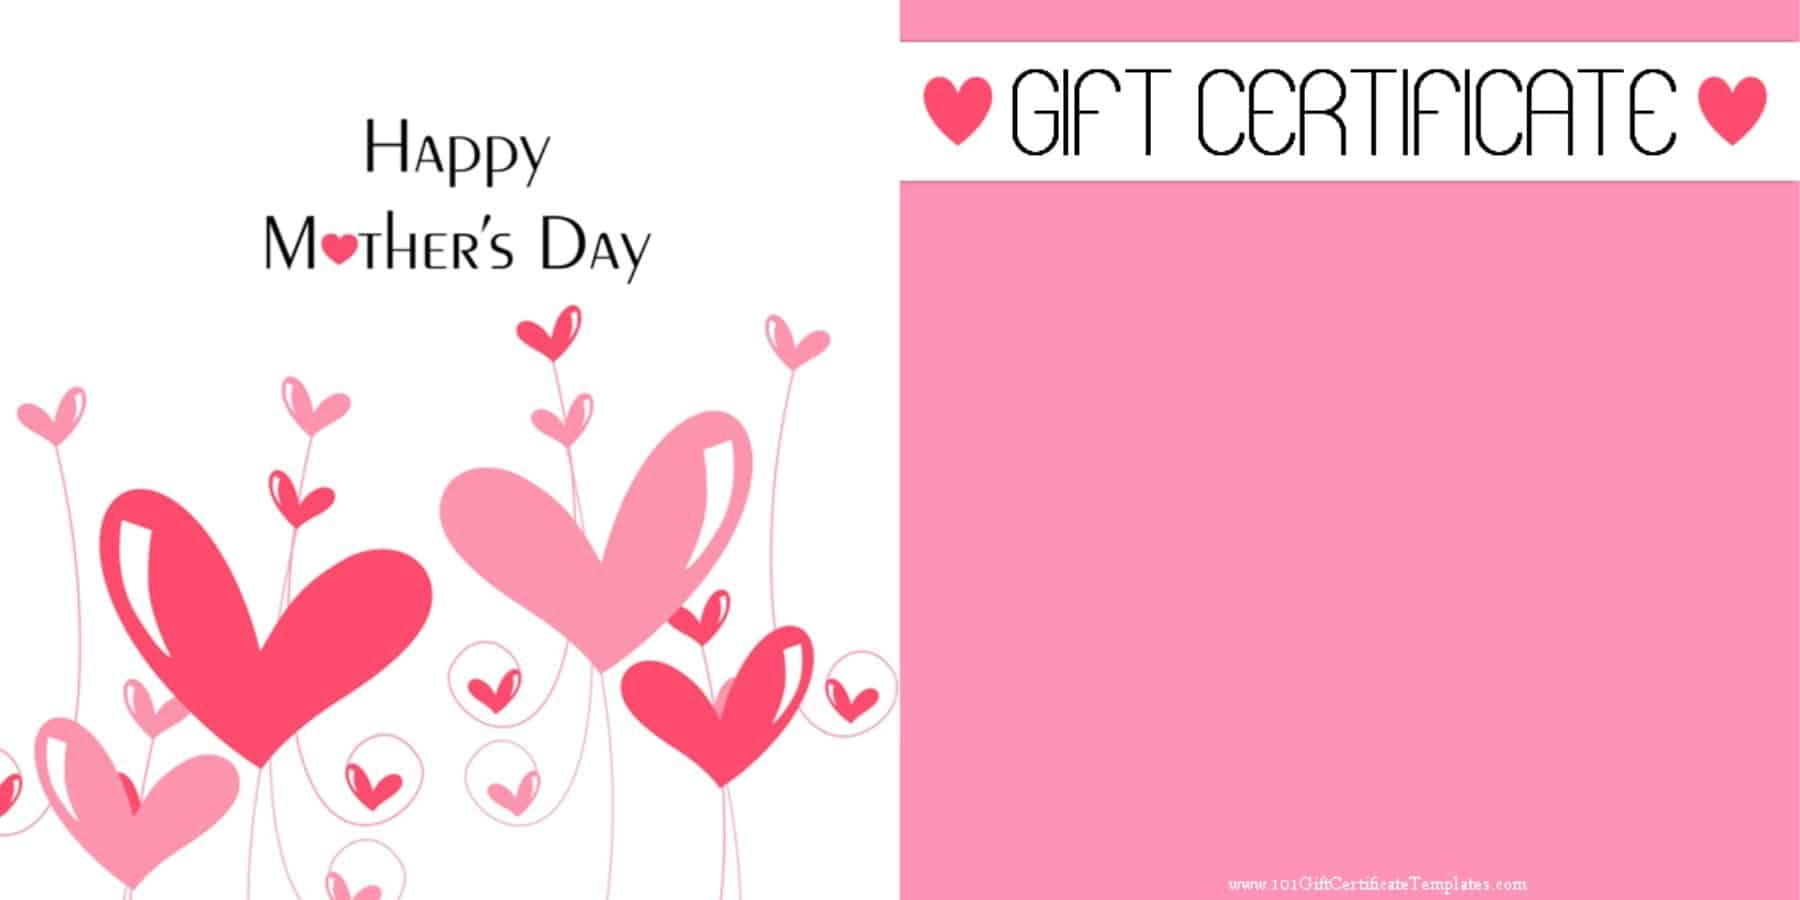 Mothers day gift certificate templates printable mothers day gift certificate template xflitez Images